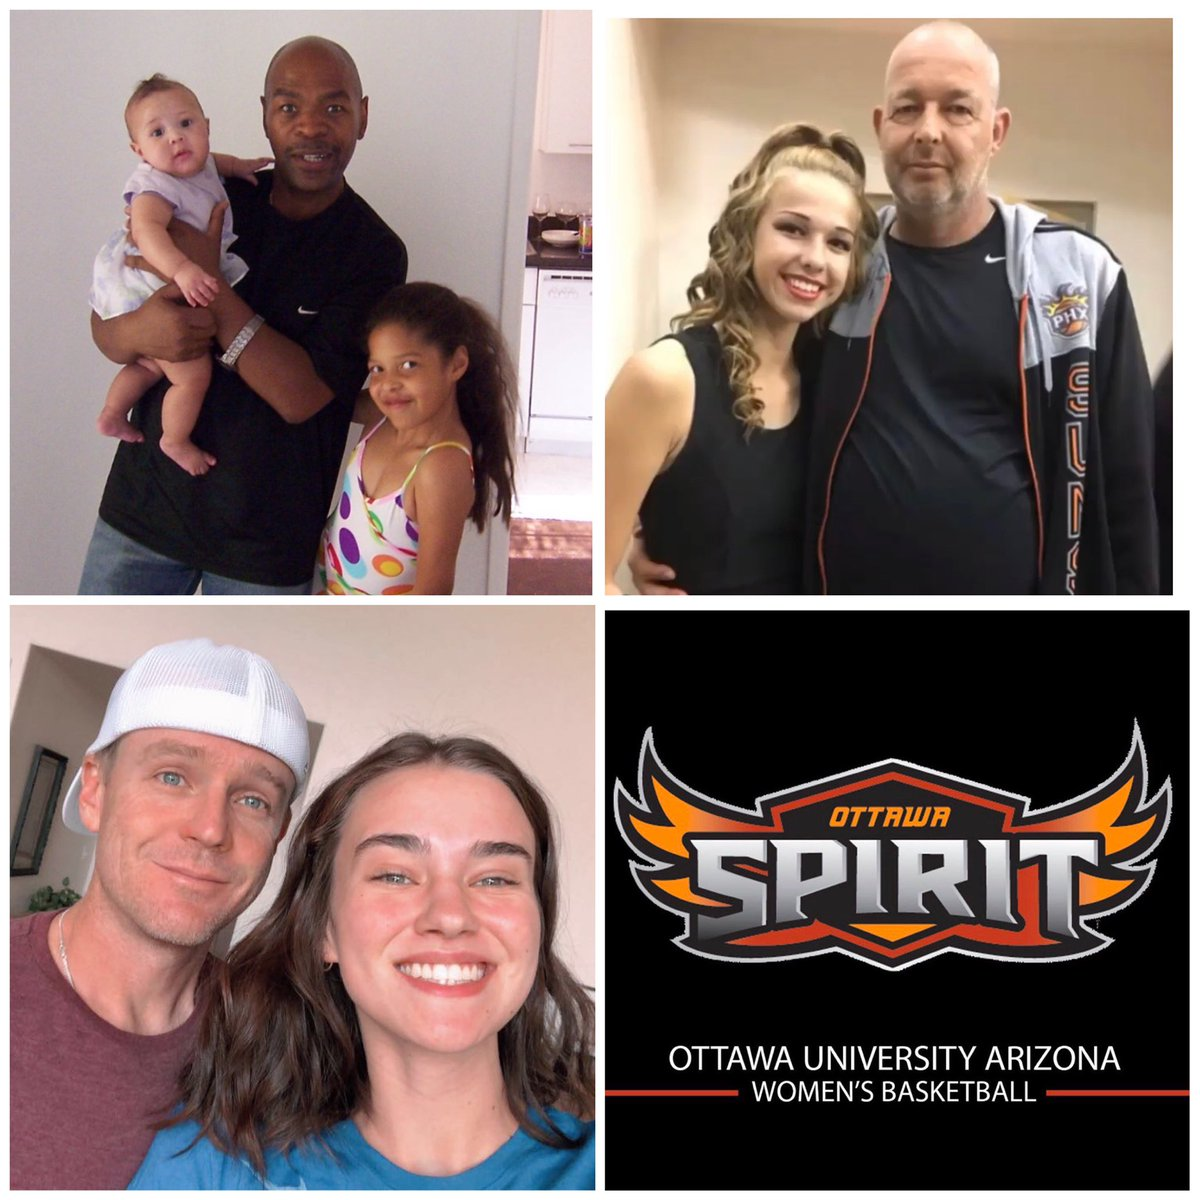 Hoping it was a great day for all the @OUAZWBB Dads!!!🏀🐺  #FightingSpirit https://t.co/hyM6zDi6wx